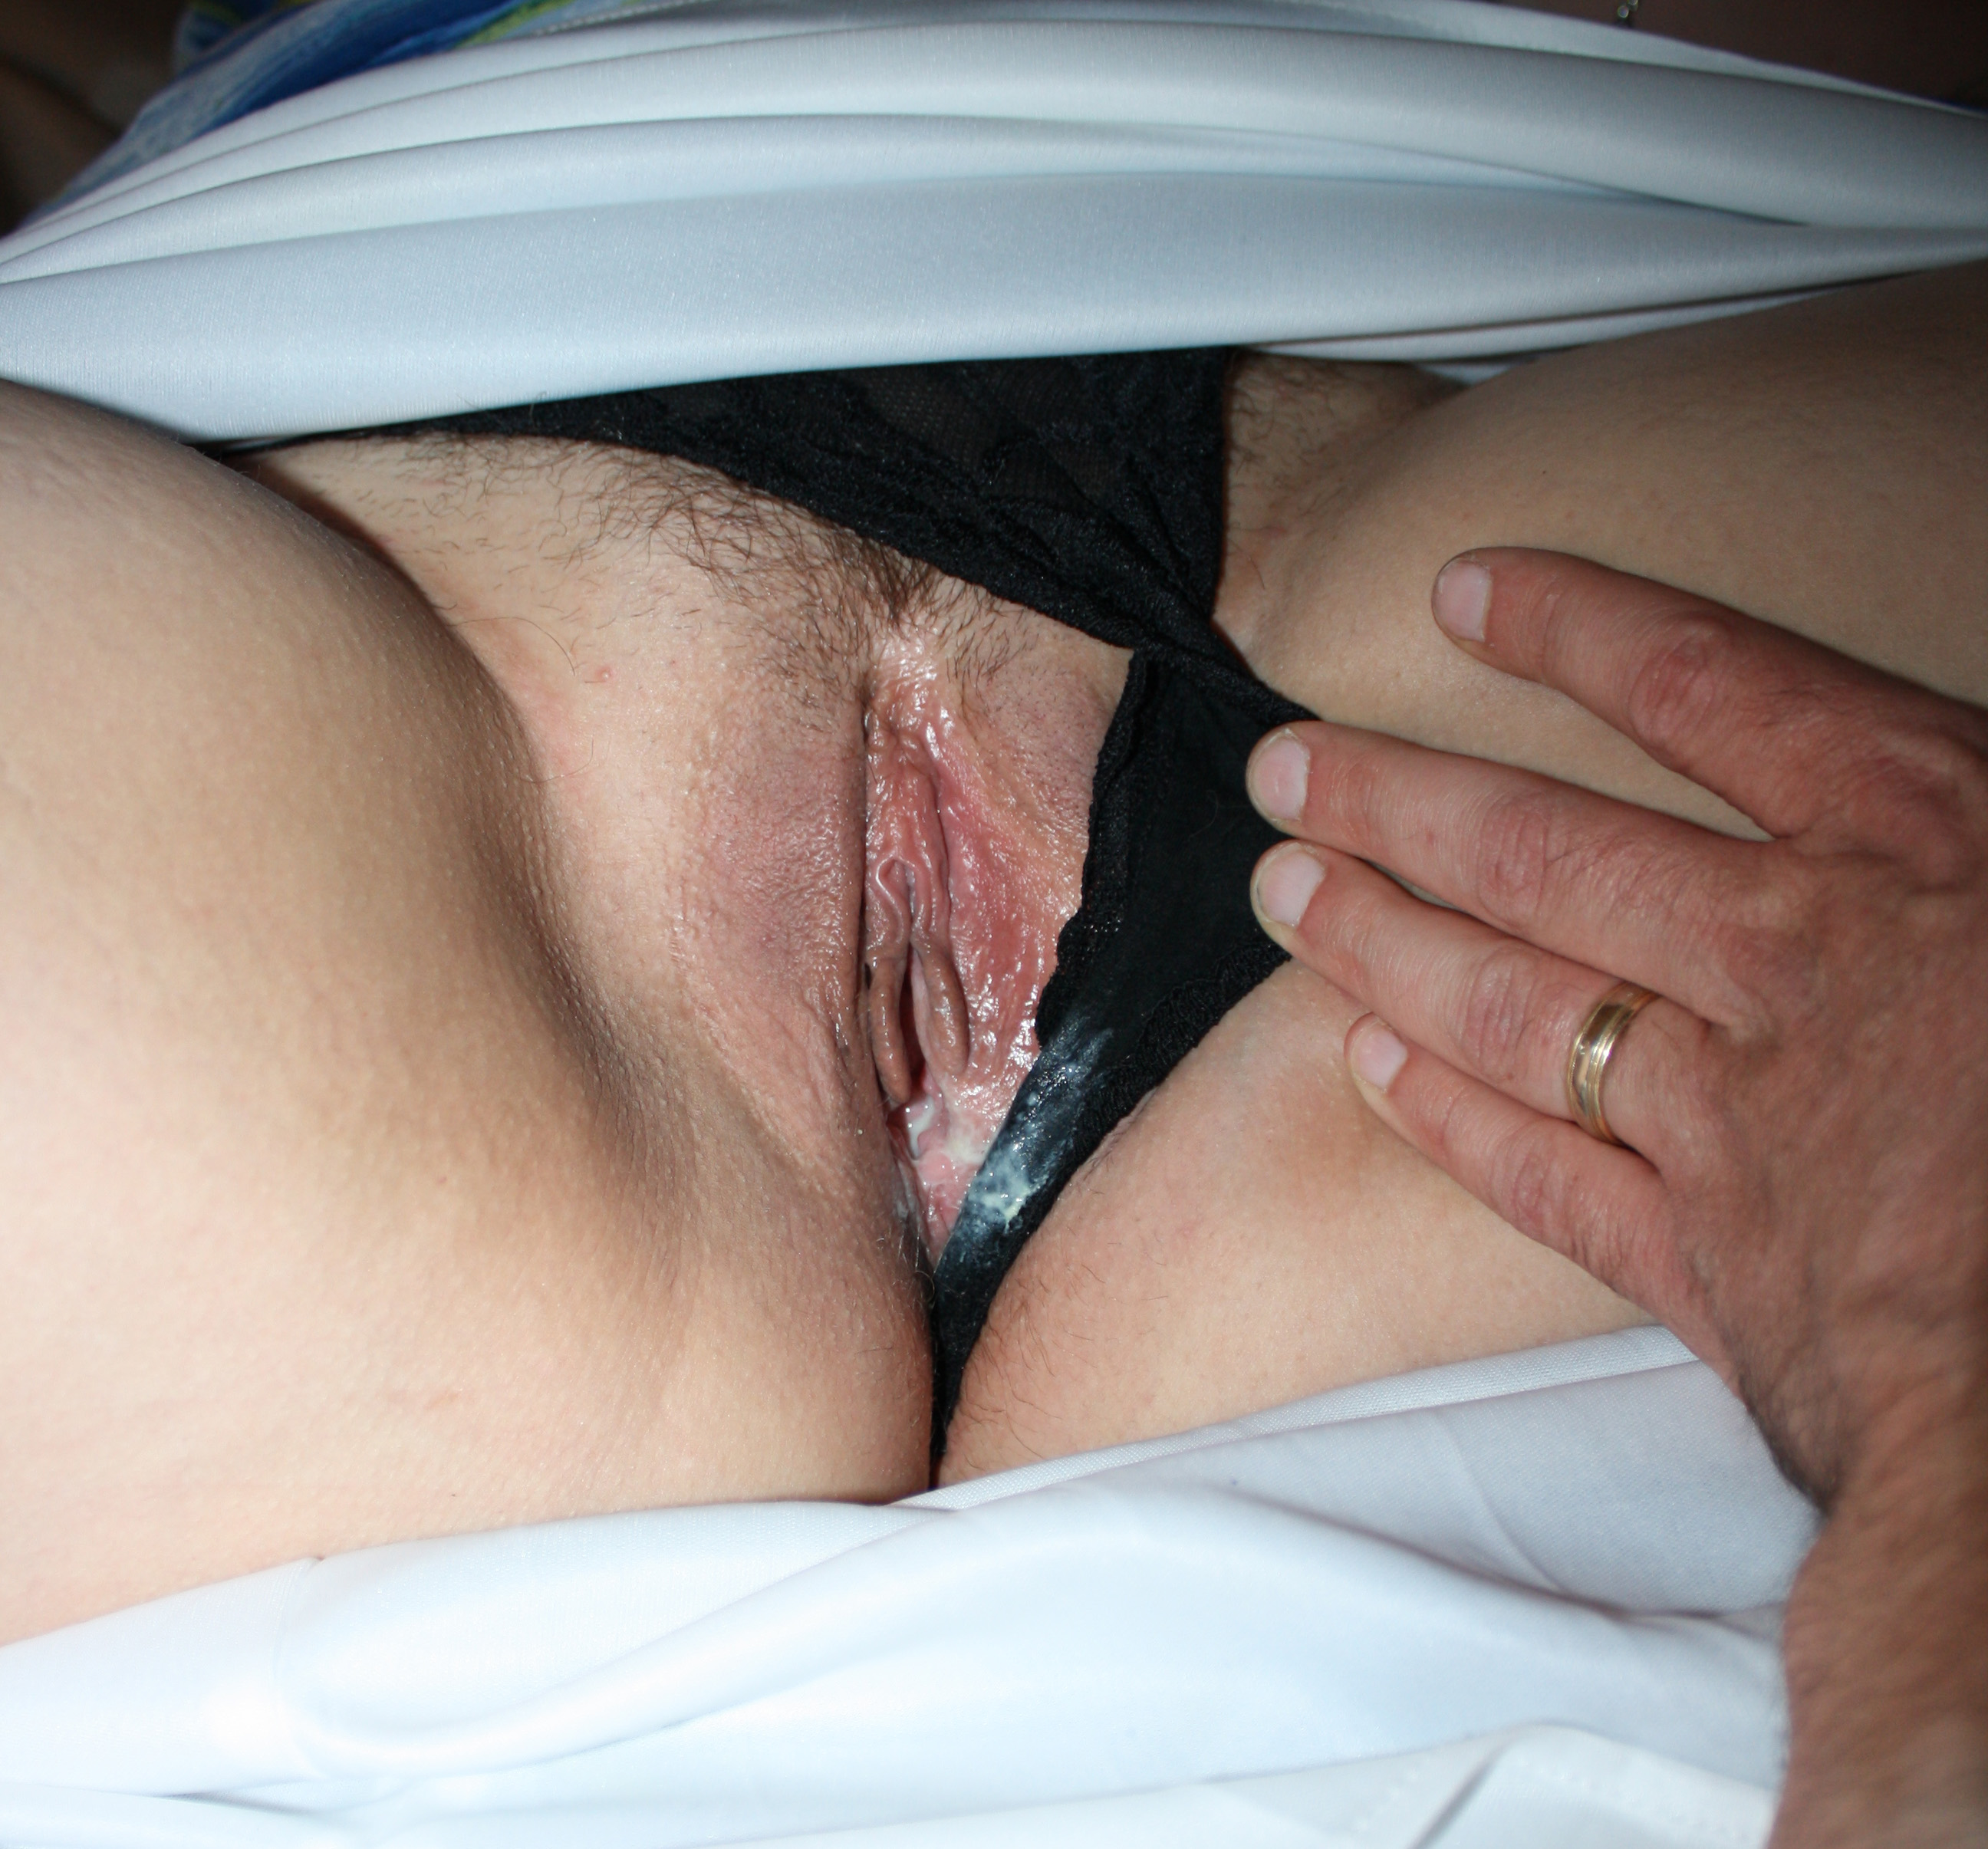 panties to the side porn